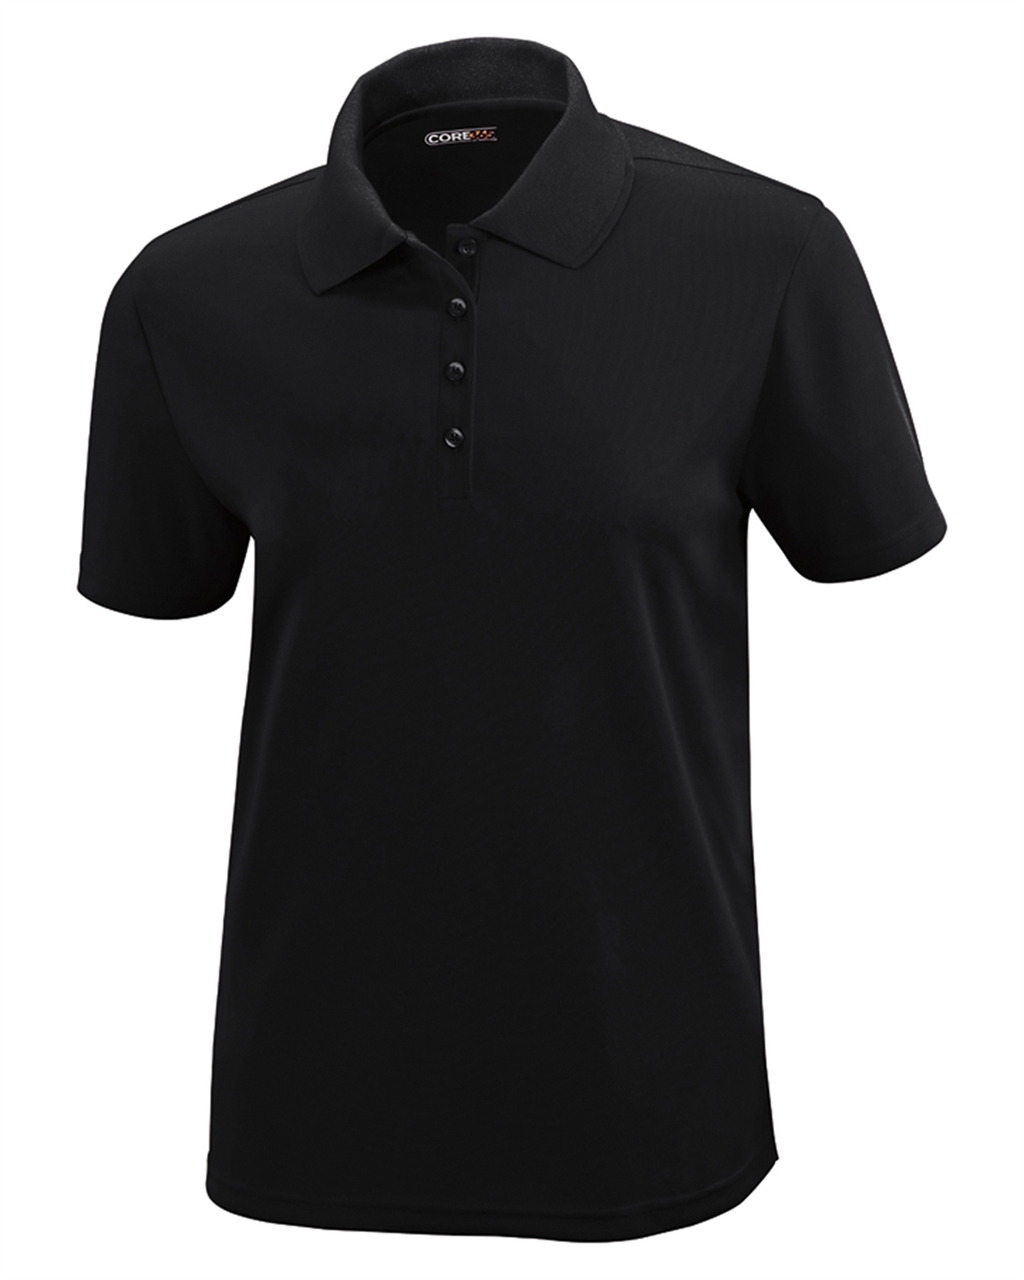 Picture of Core365 Ladies Performance Pique Polo